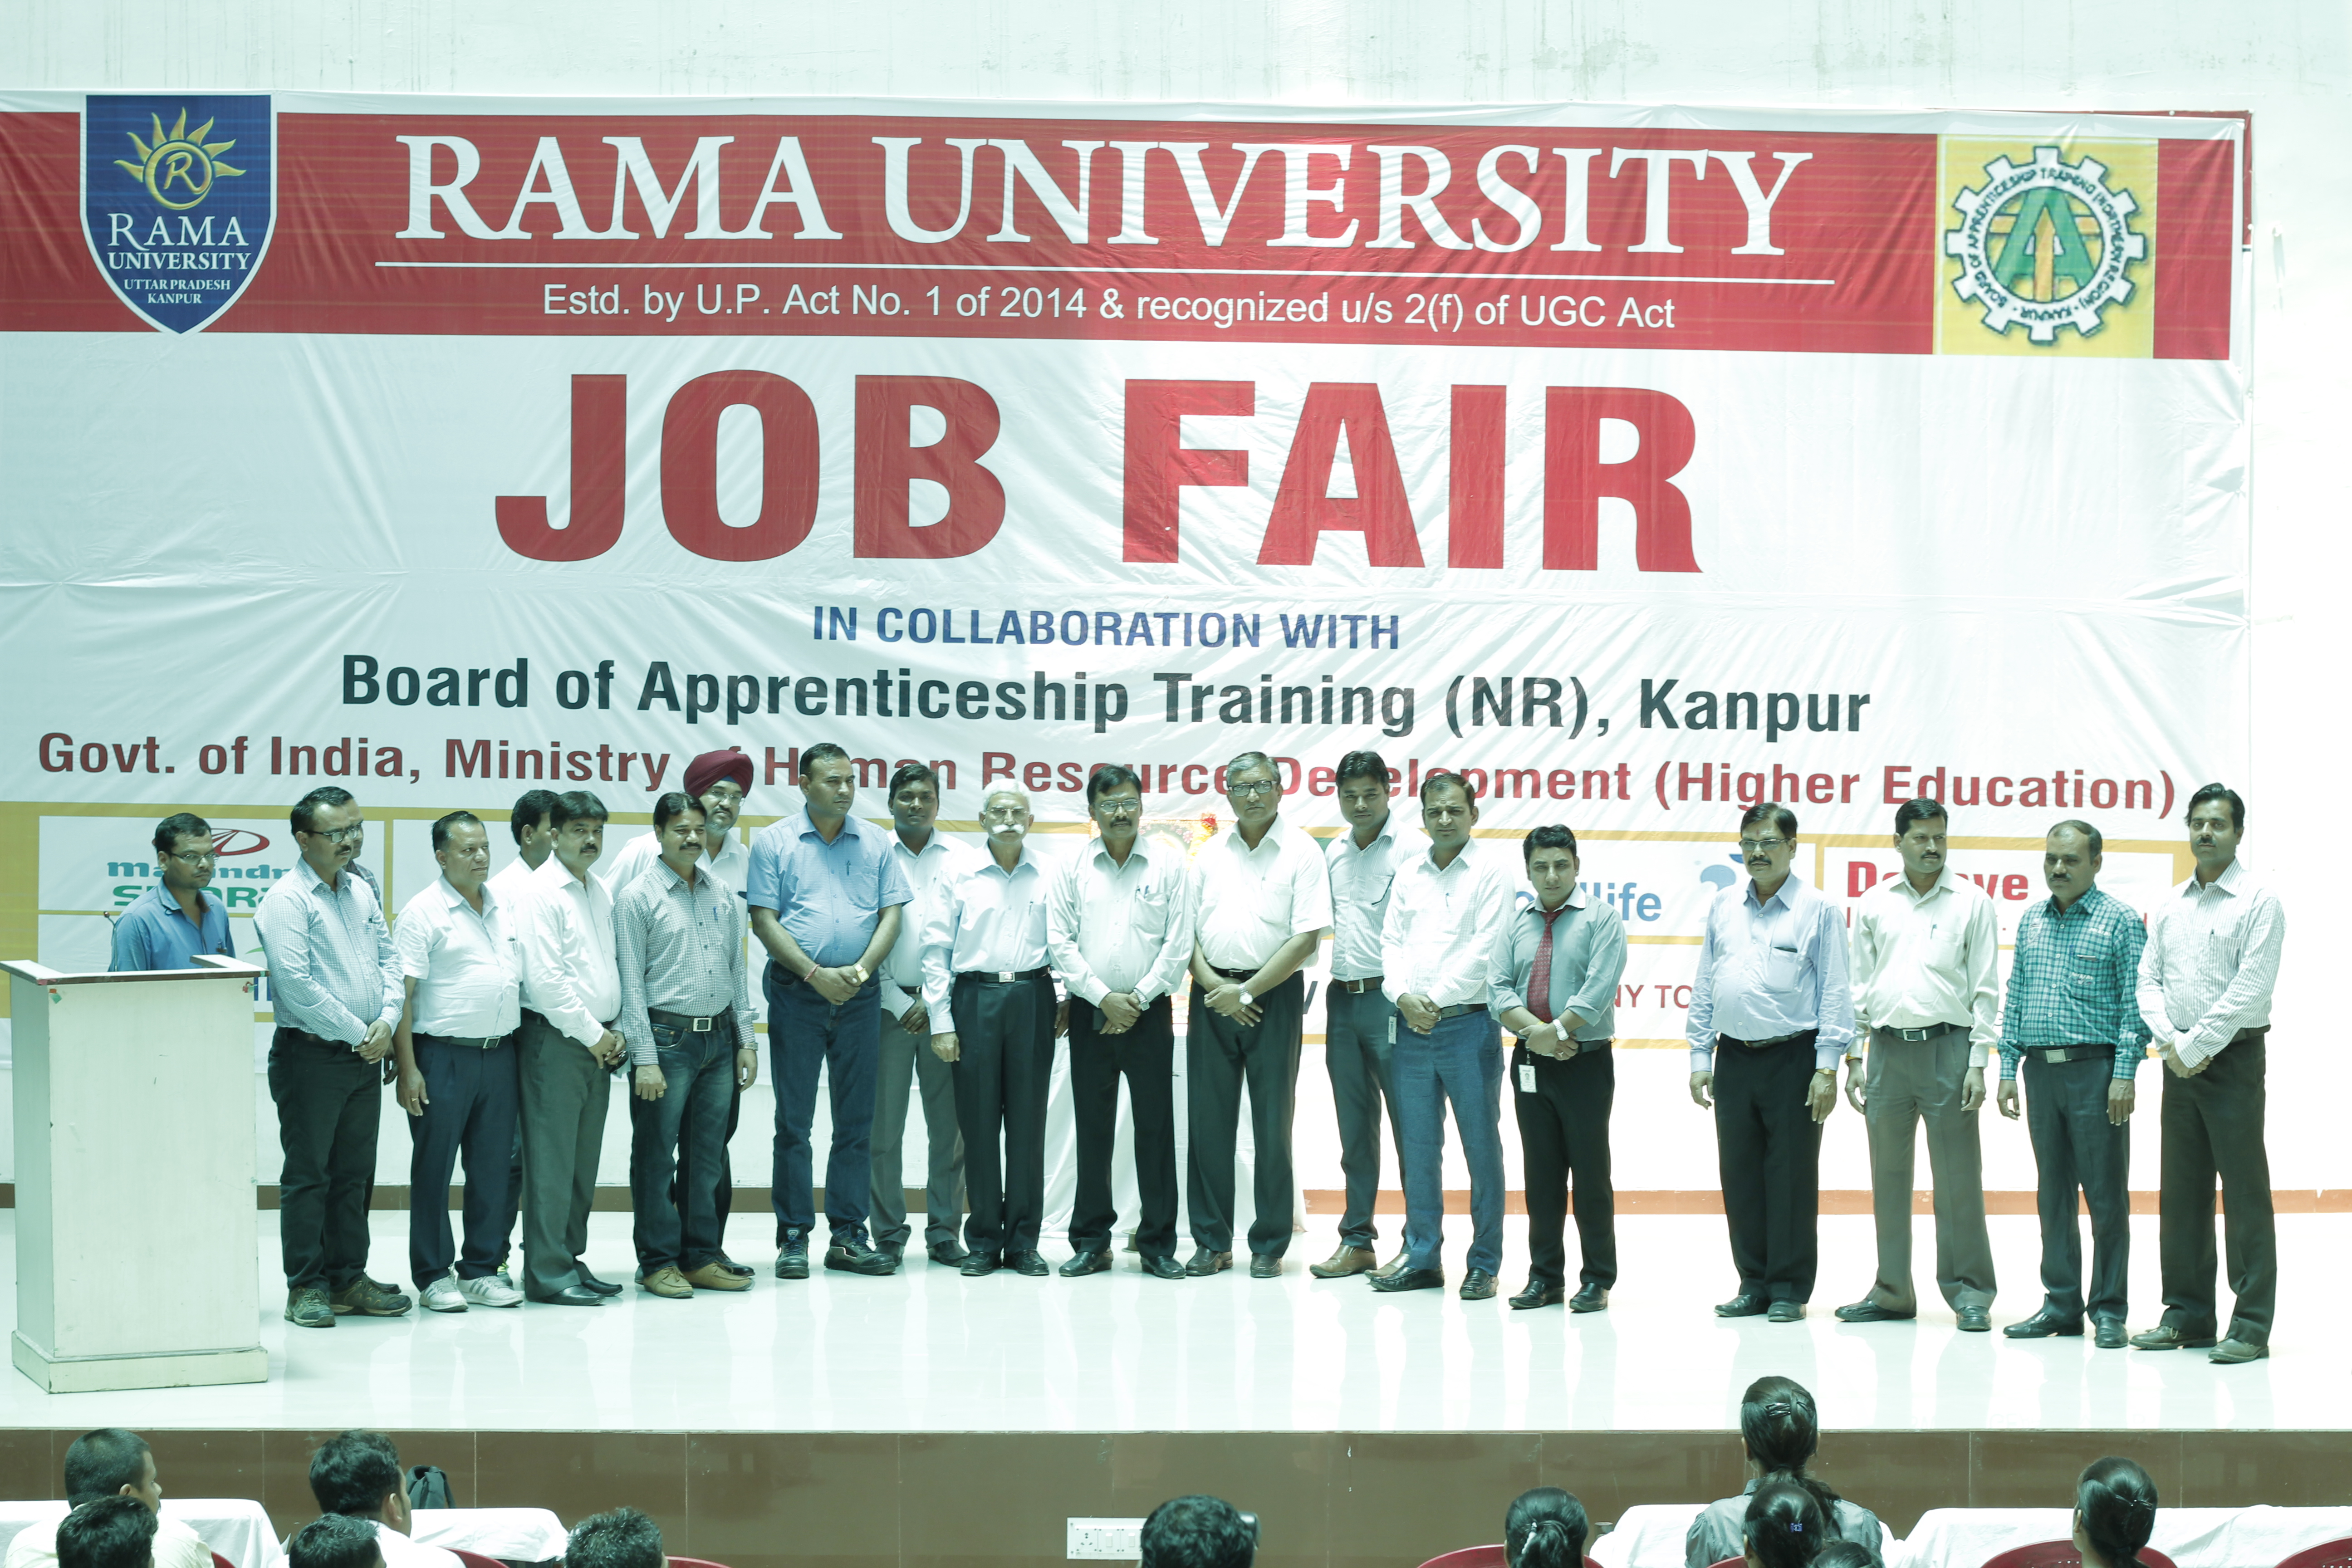 Job Fair at Rama University Uttar Pradesh, Kanpur